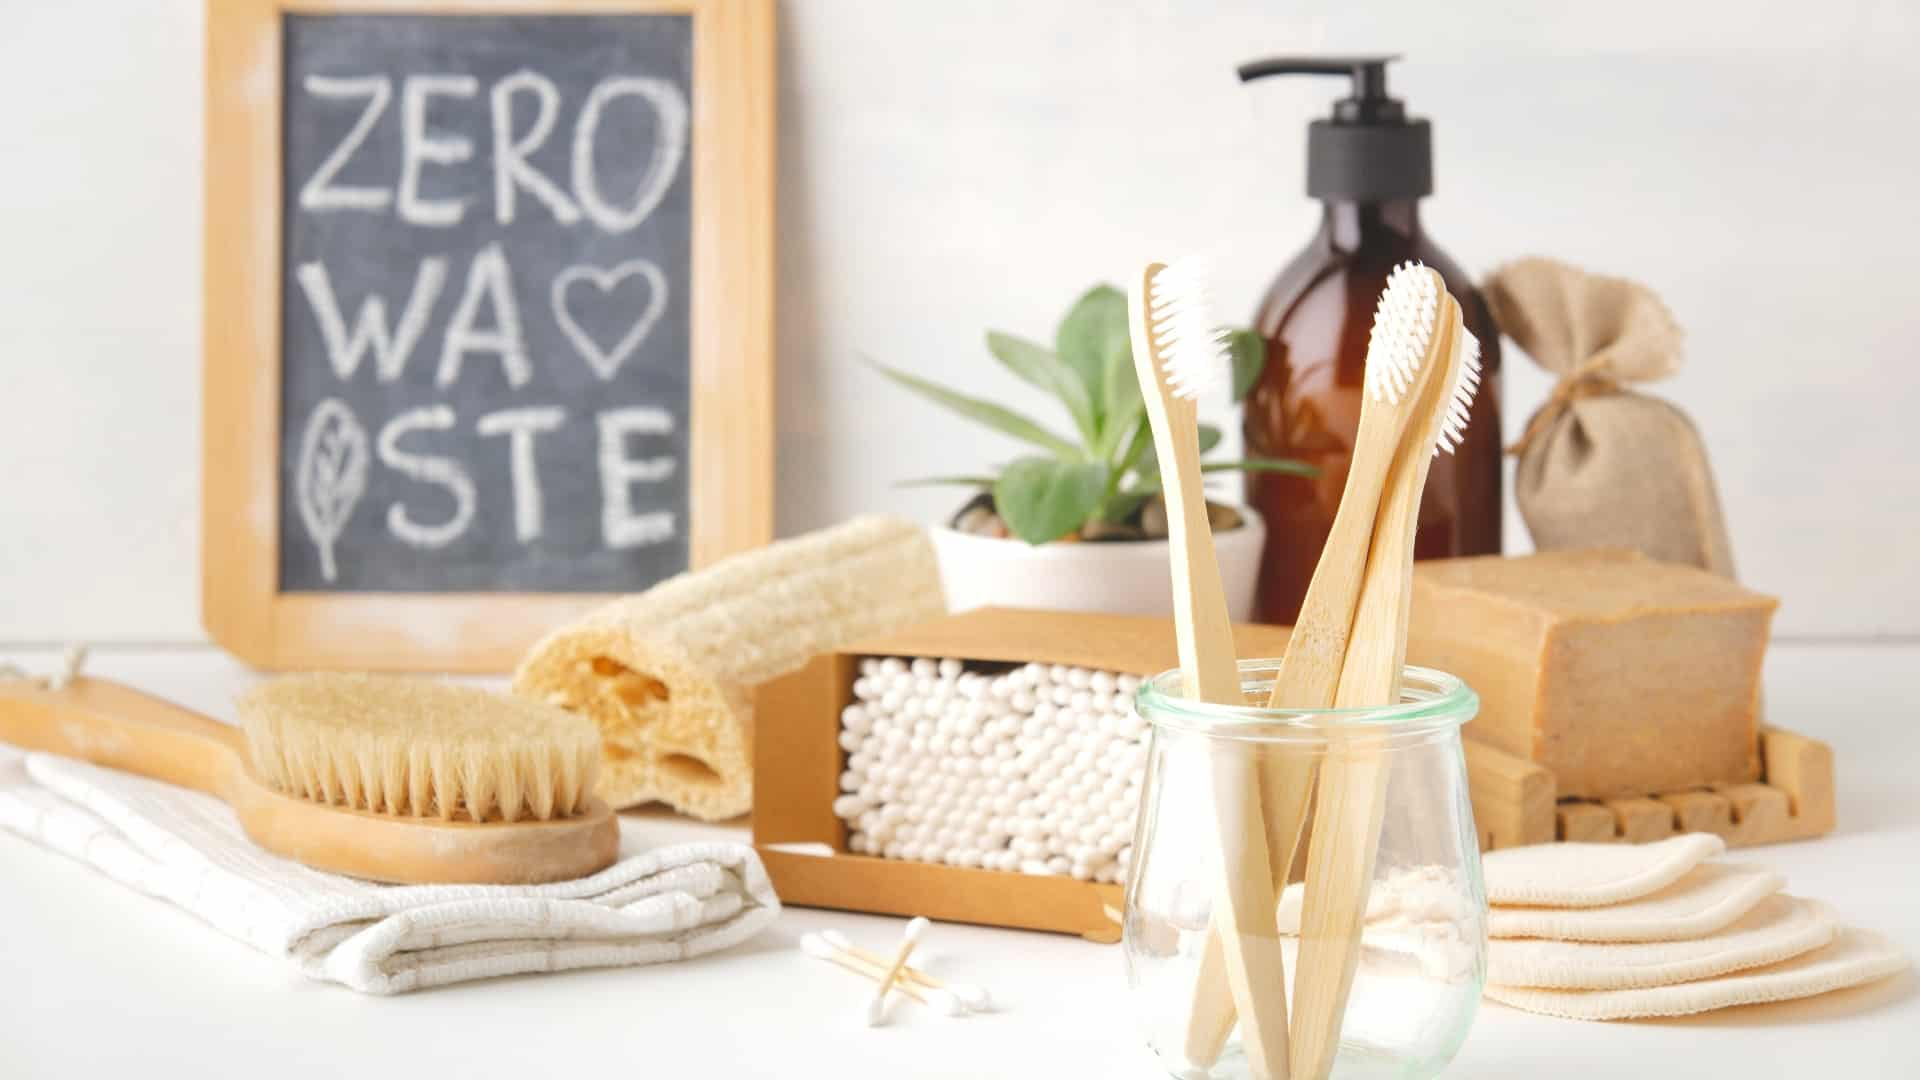 Zero waste lifestyle tips | Tips, do's & don'ts, praktische informatie